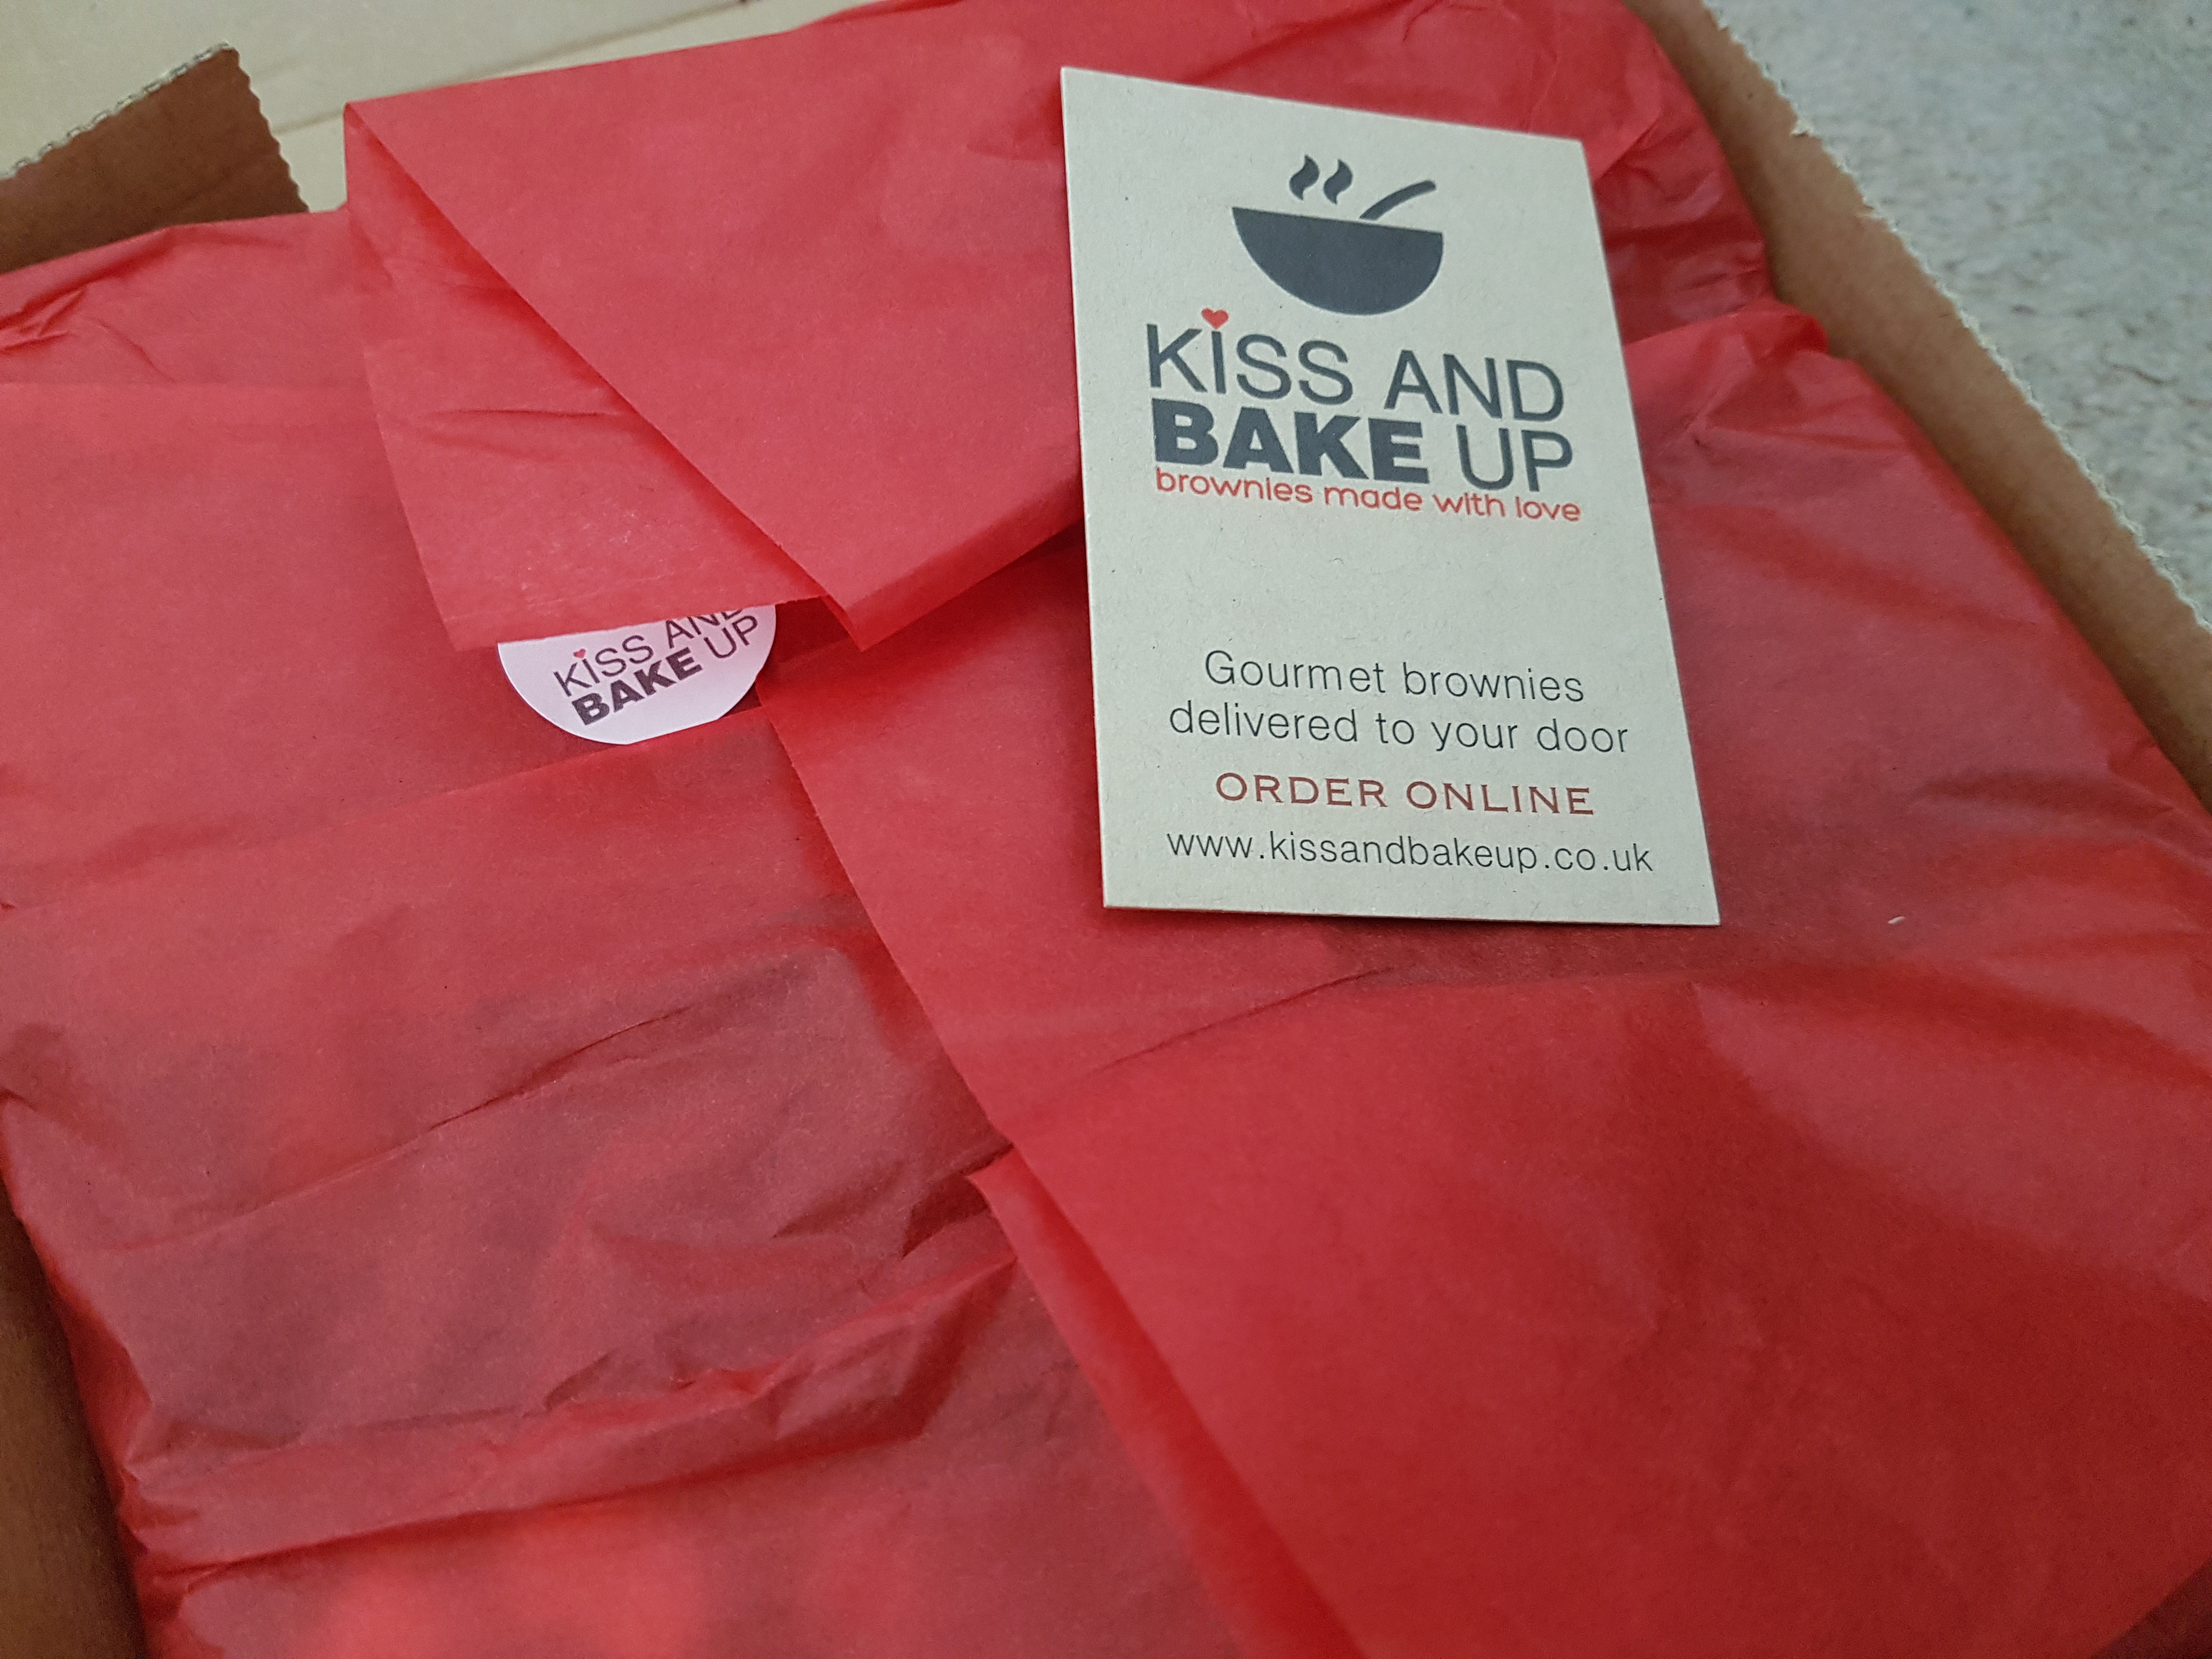 Kiss and Bake Up brownies arrive wrapped in tissue paper so they make a lovely gift